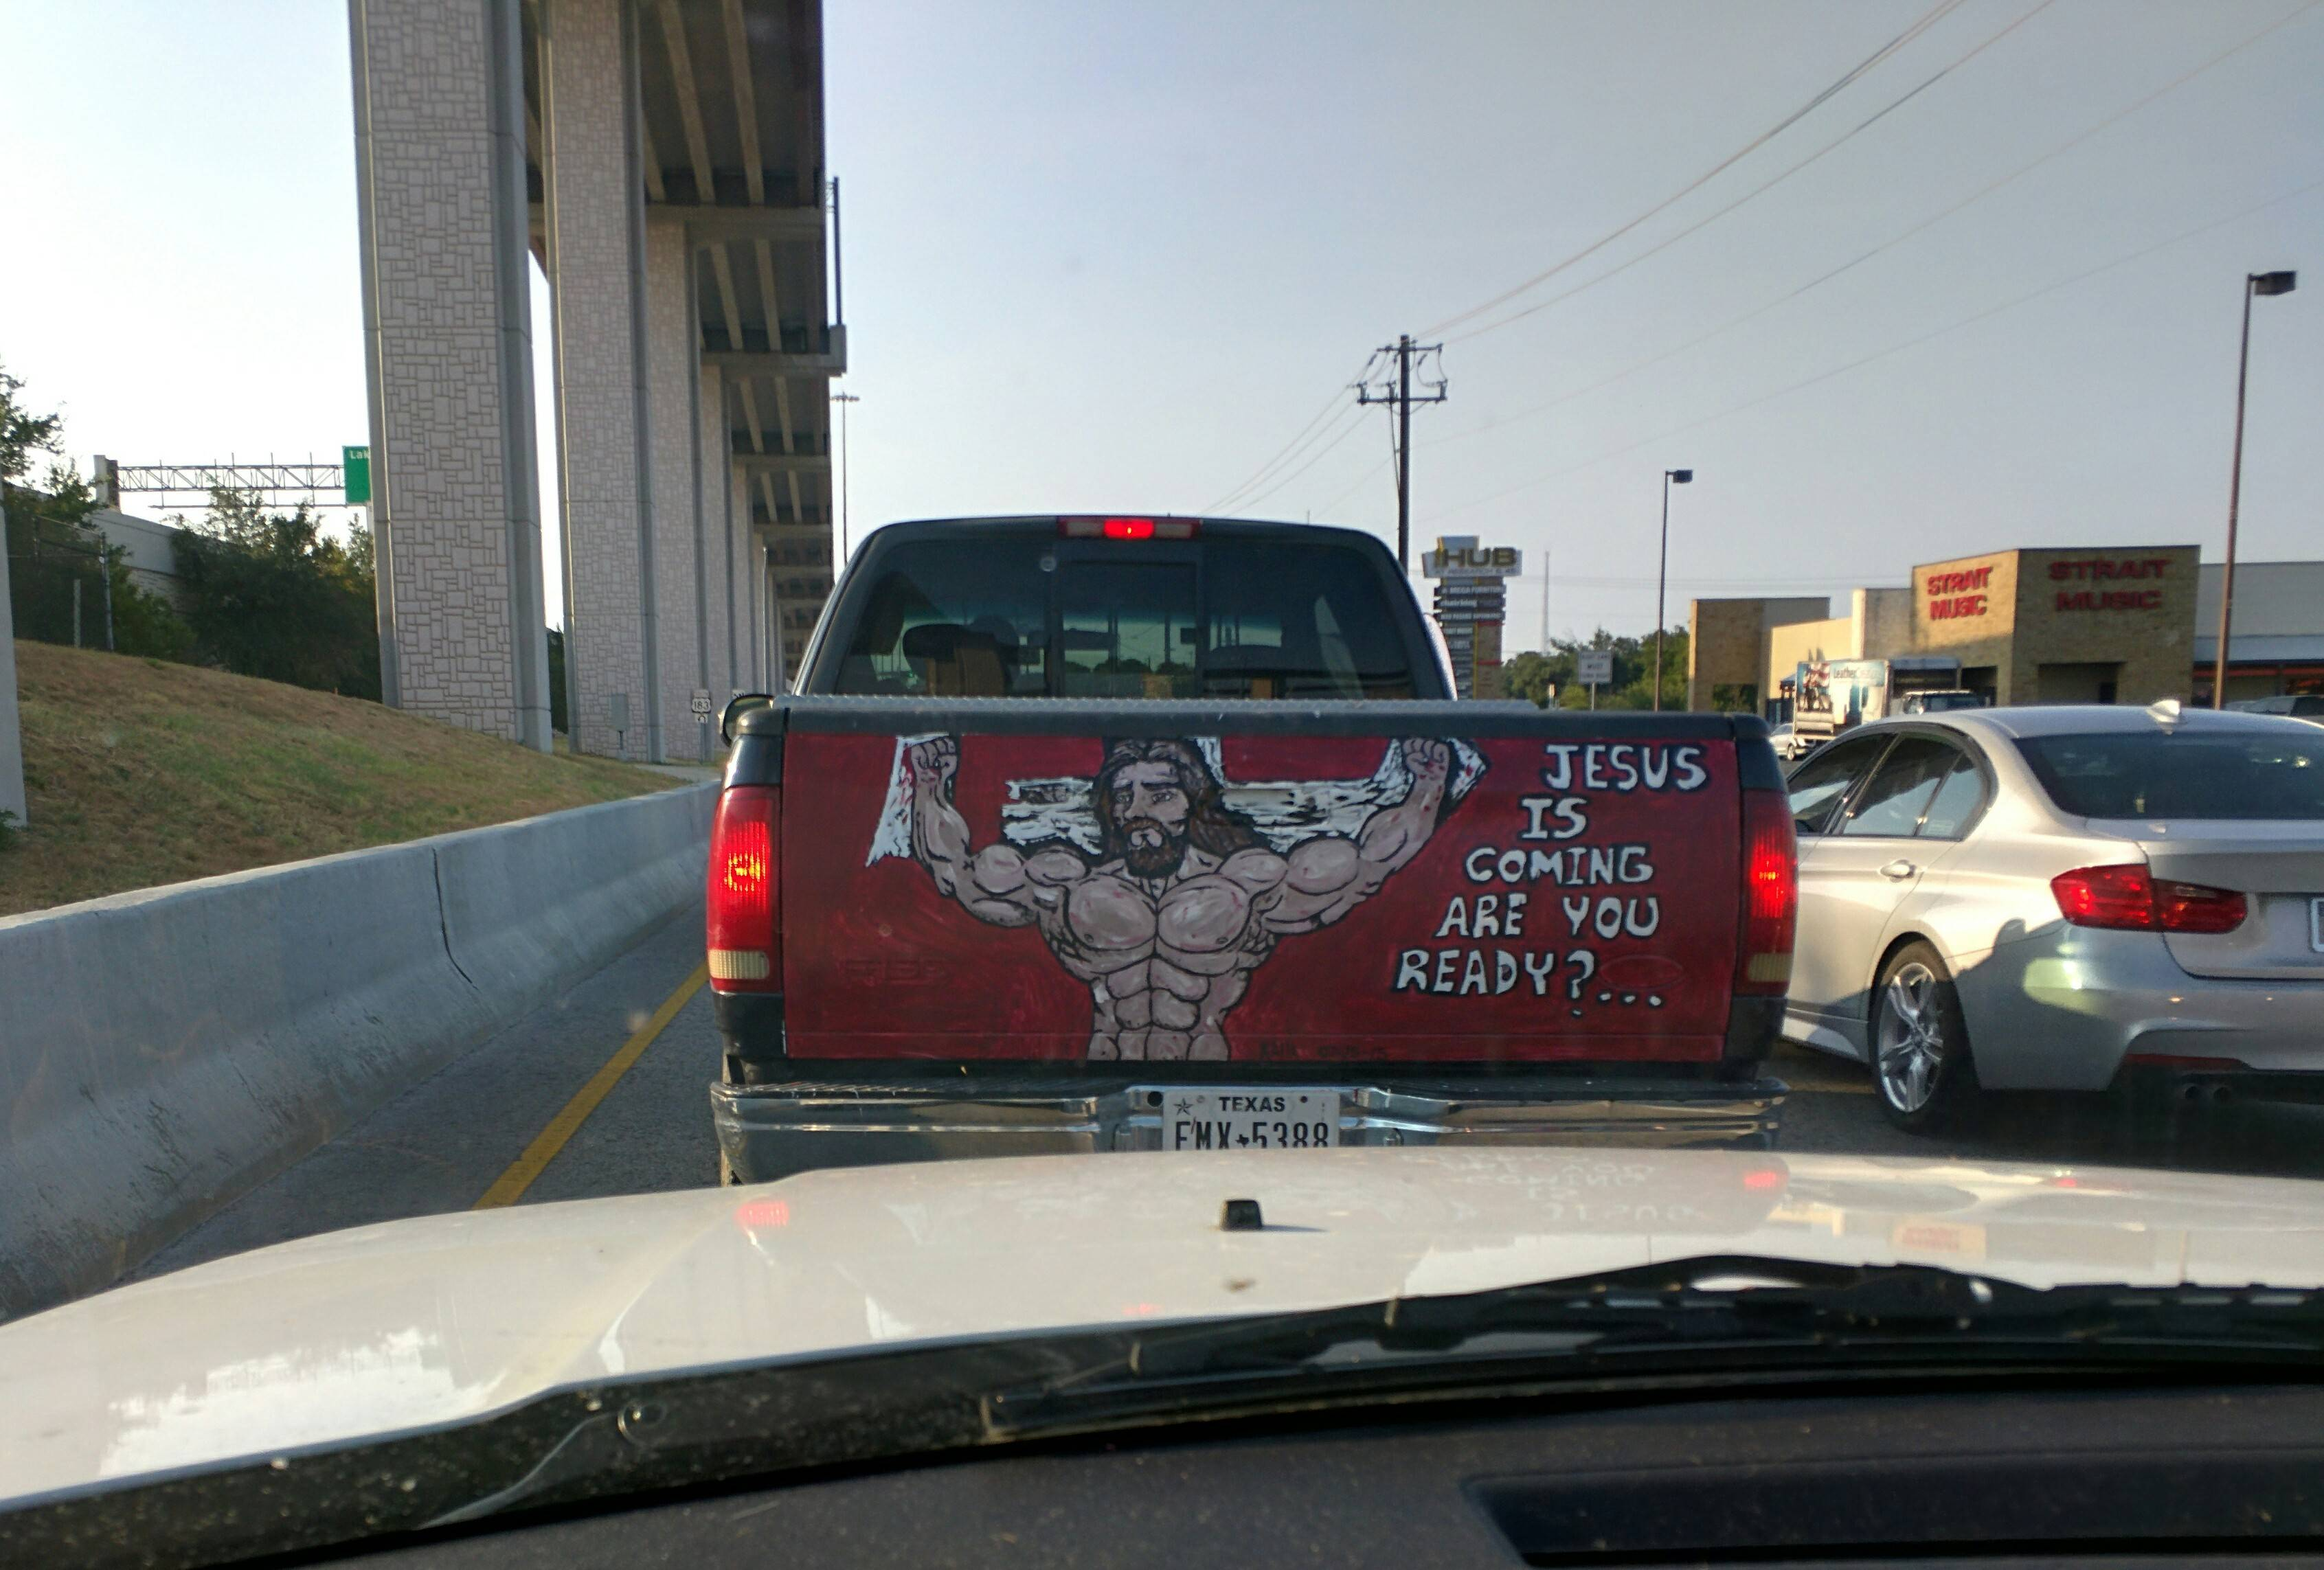 Jesus Christ! Have you been working out?